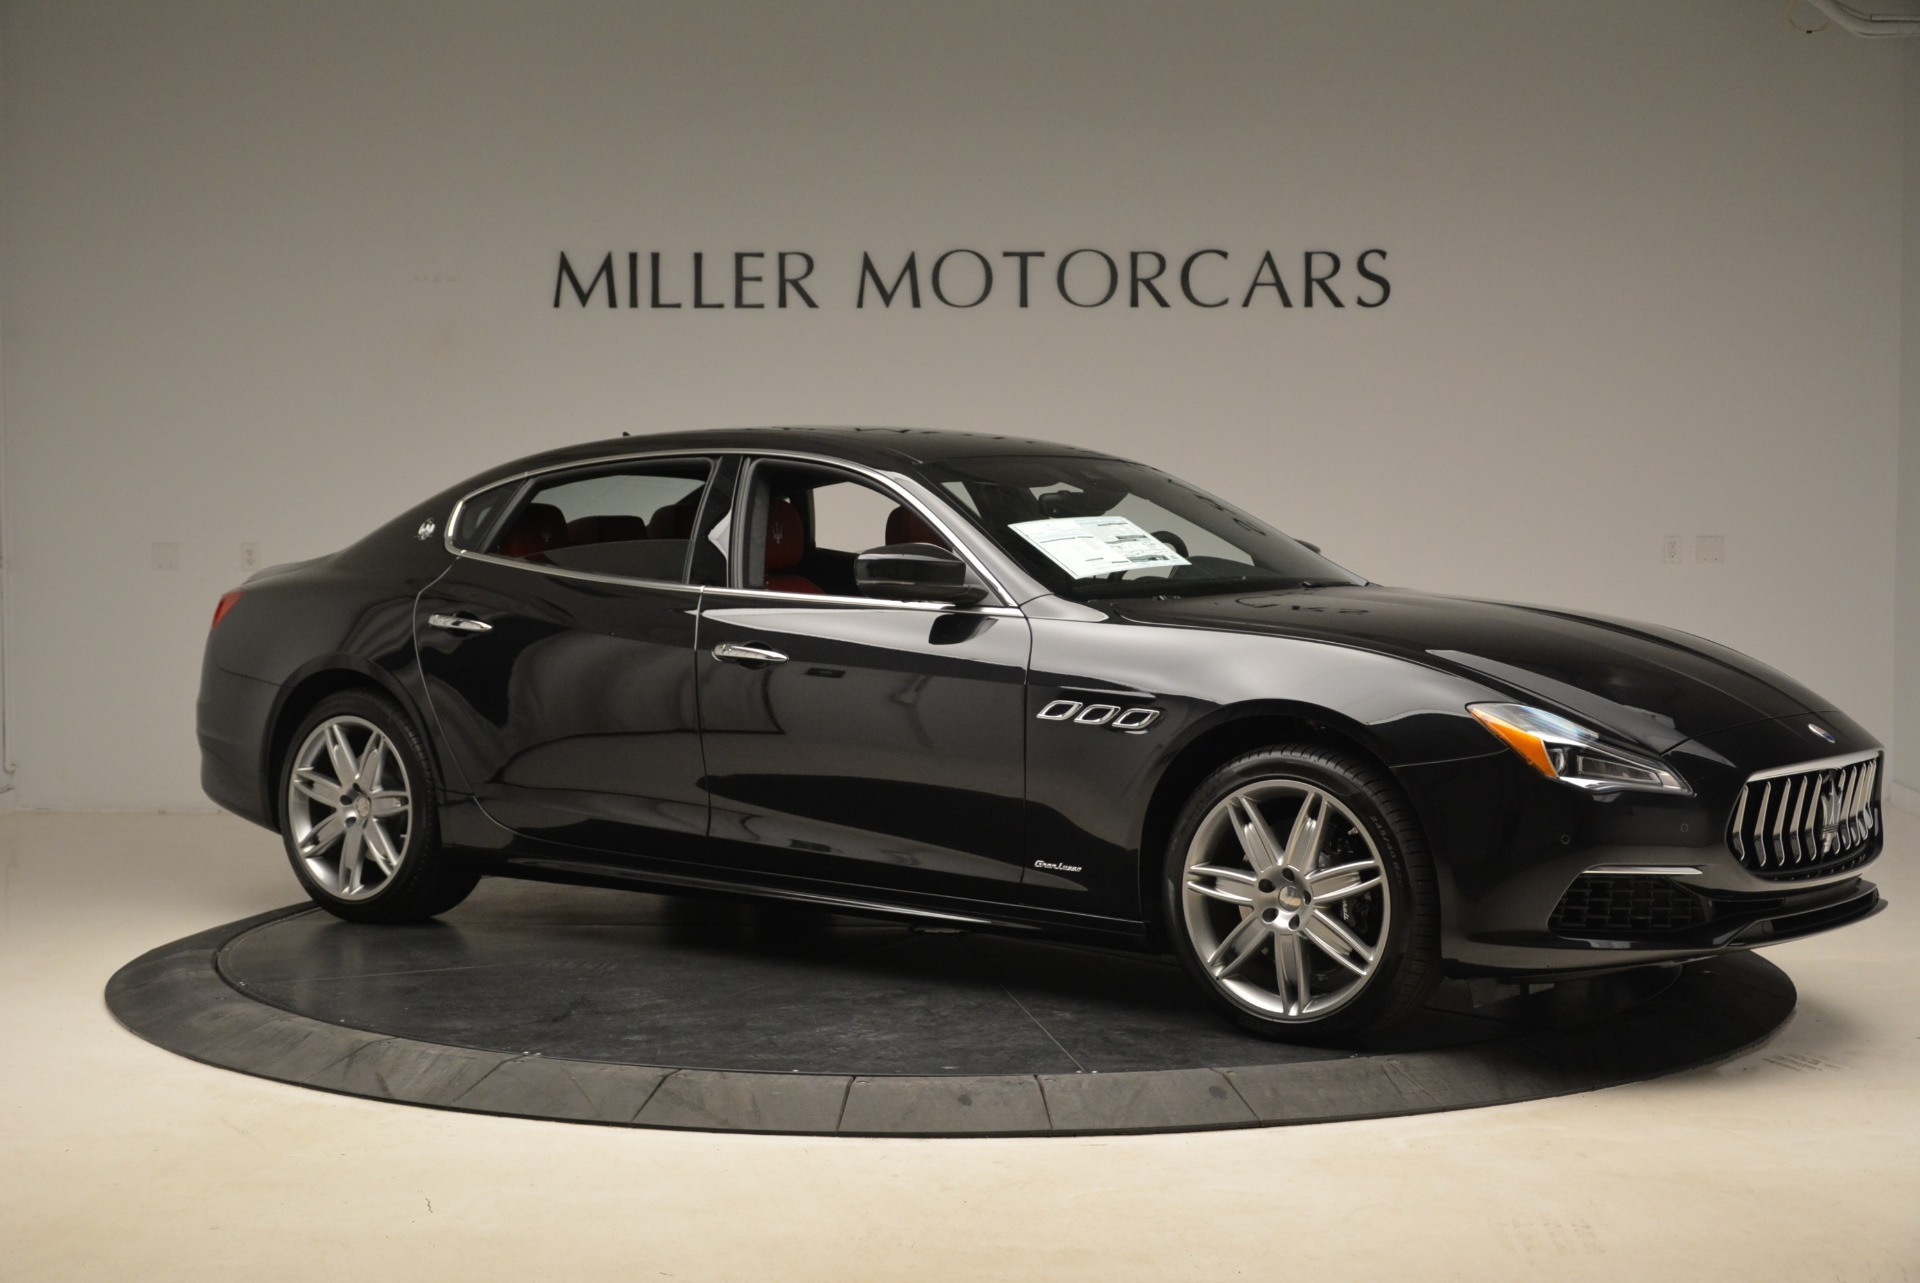 New 2018 Maserati Quattroporte S Q4 GranLusso For Sale In Westport, CT 2293_p10